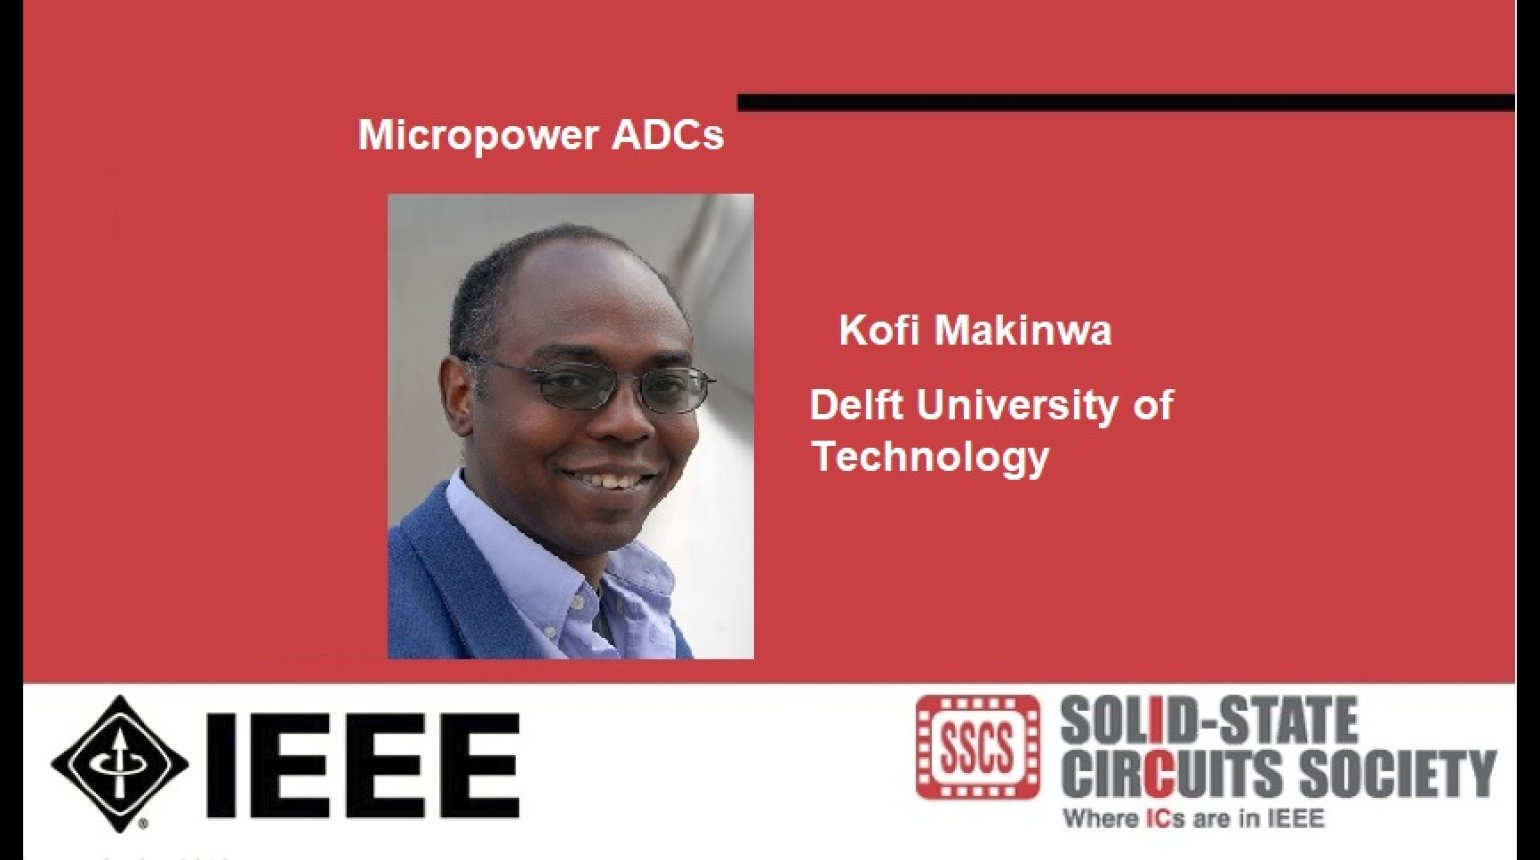 Micropower ADCs Video